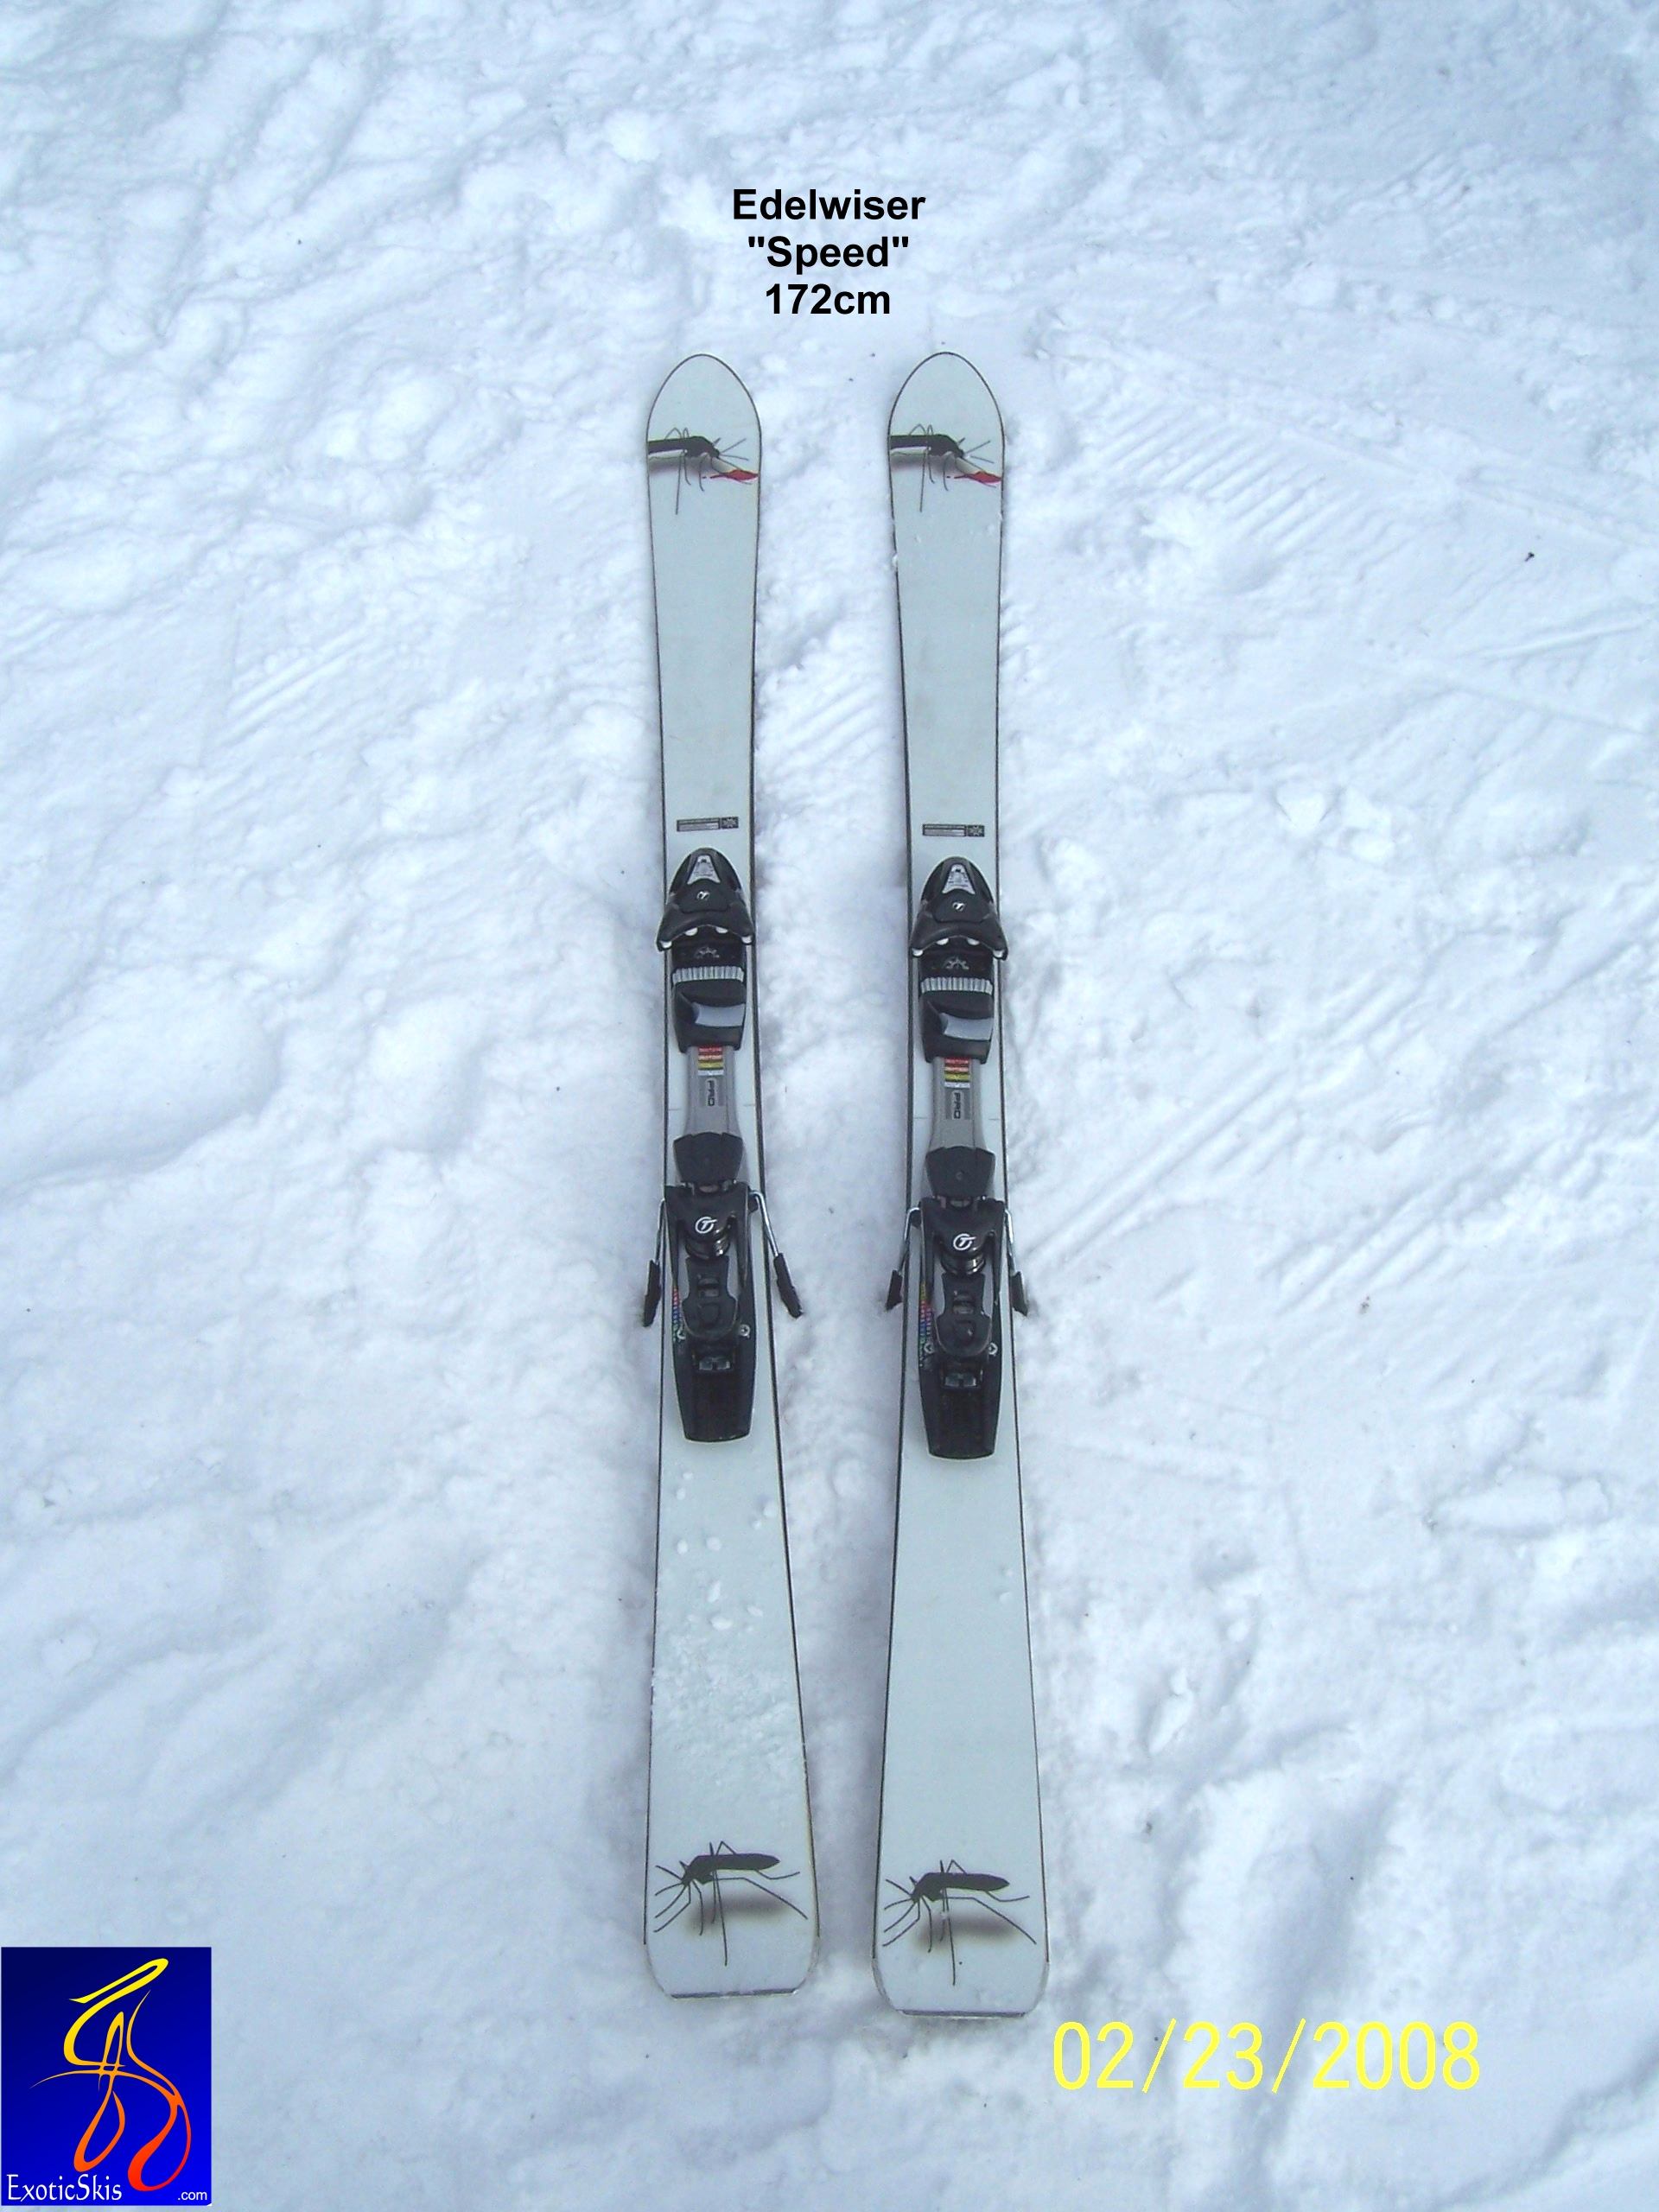 Edelwiser speed review from usa englisch carving ski